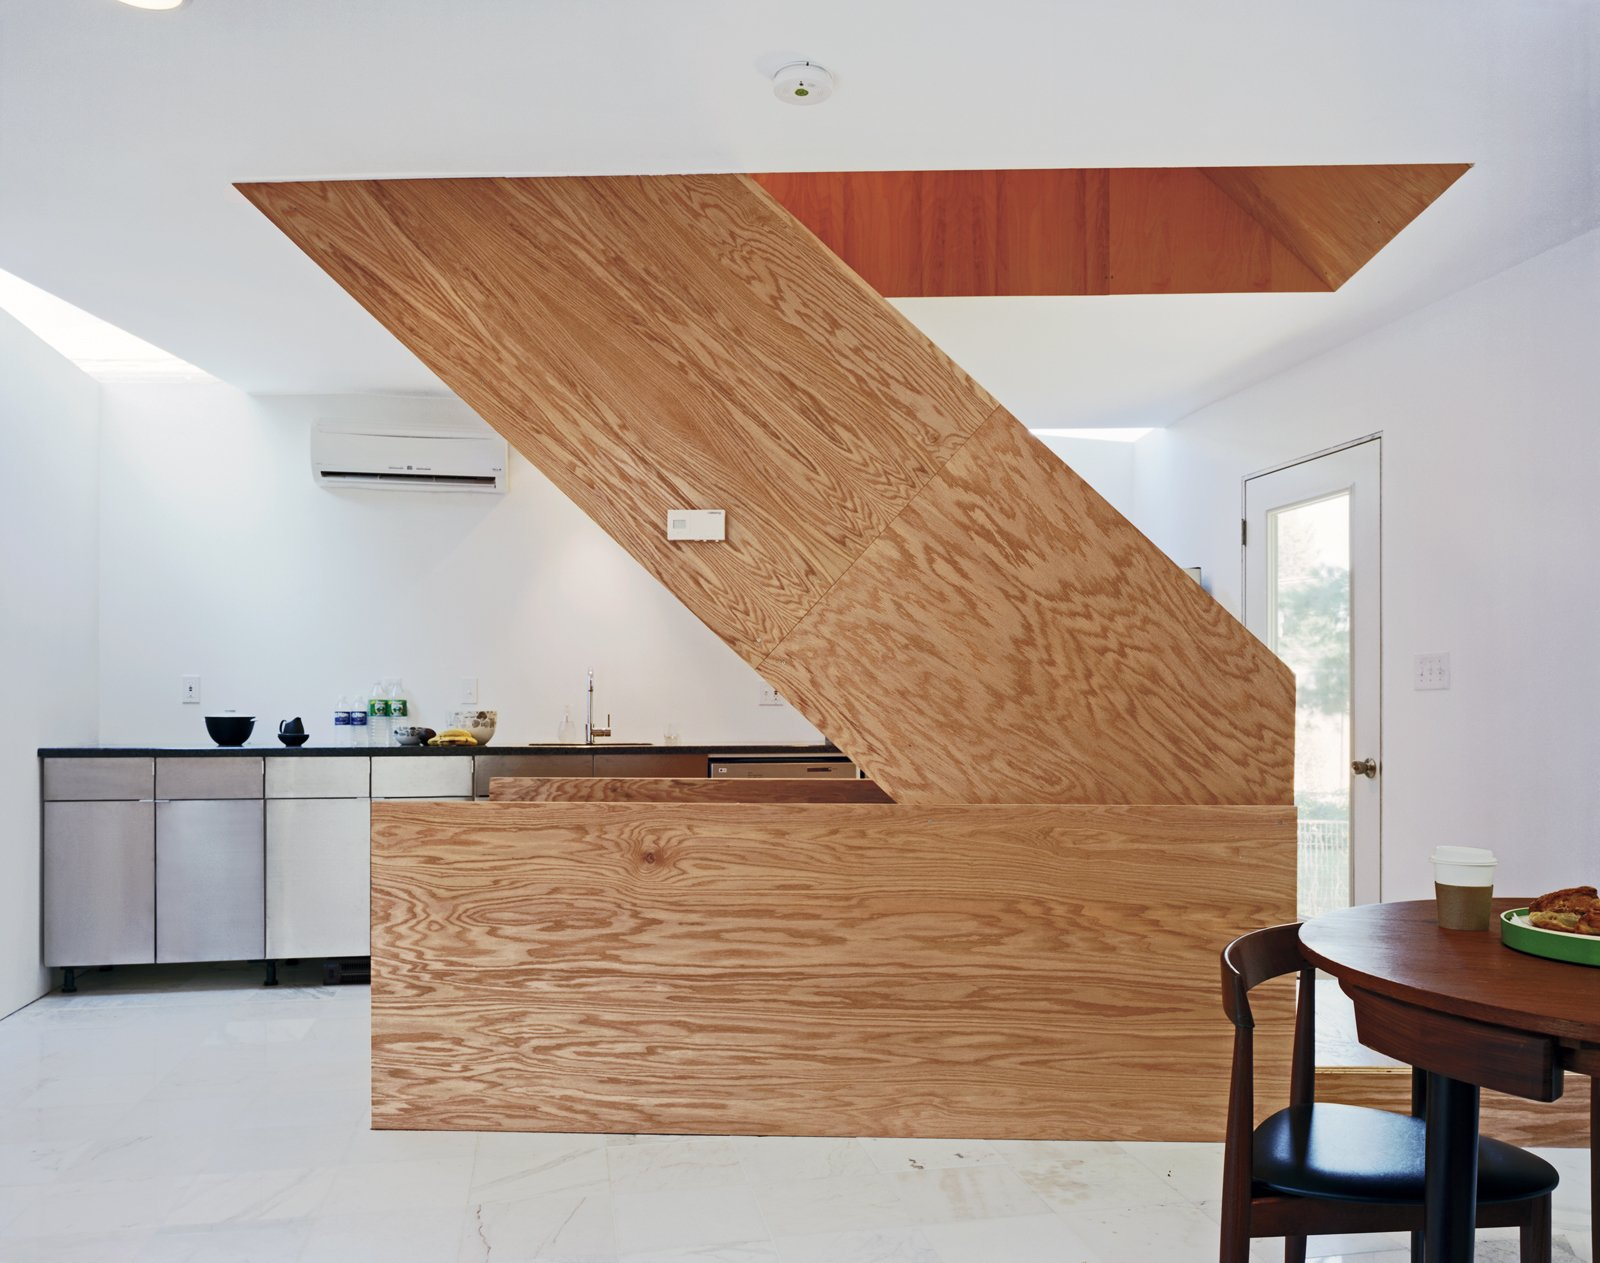 The wooden stairwell in the center of X-Small provides a pivot point from which the rest of the house rotates. The floor is Carrara marble bought from Olympia Marble and Home Depot.  Photo 1 of 11 in Four Houses and a Future